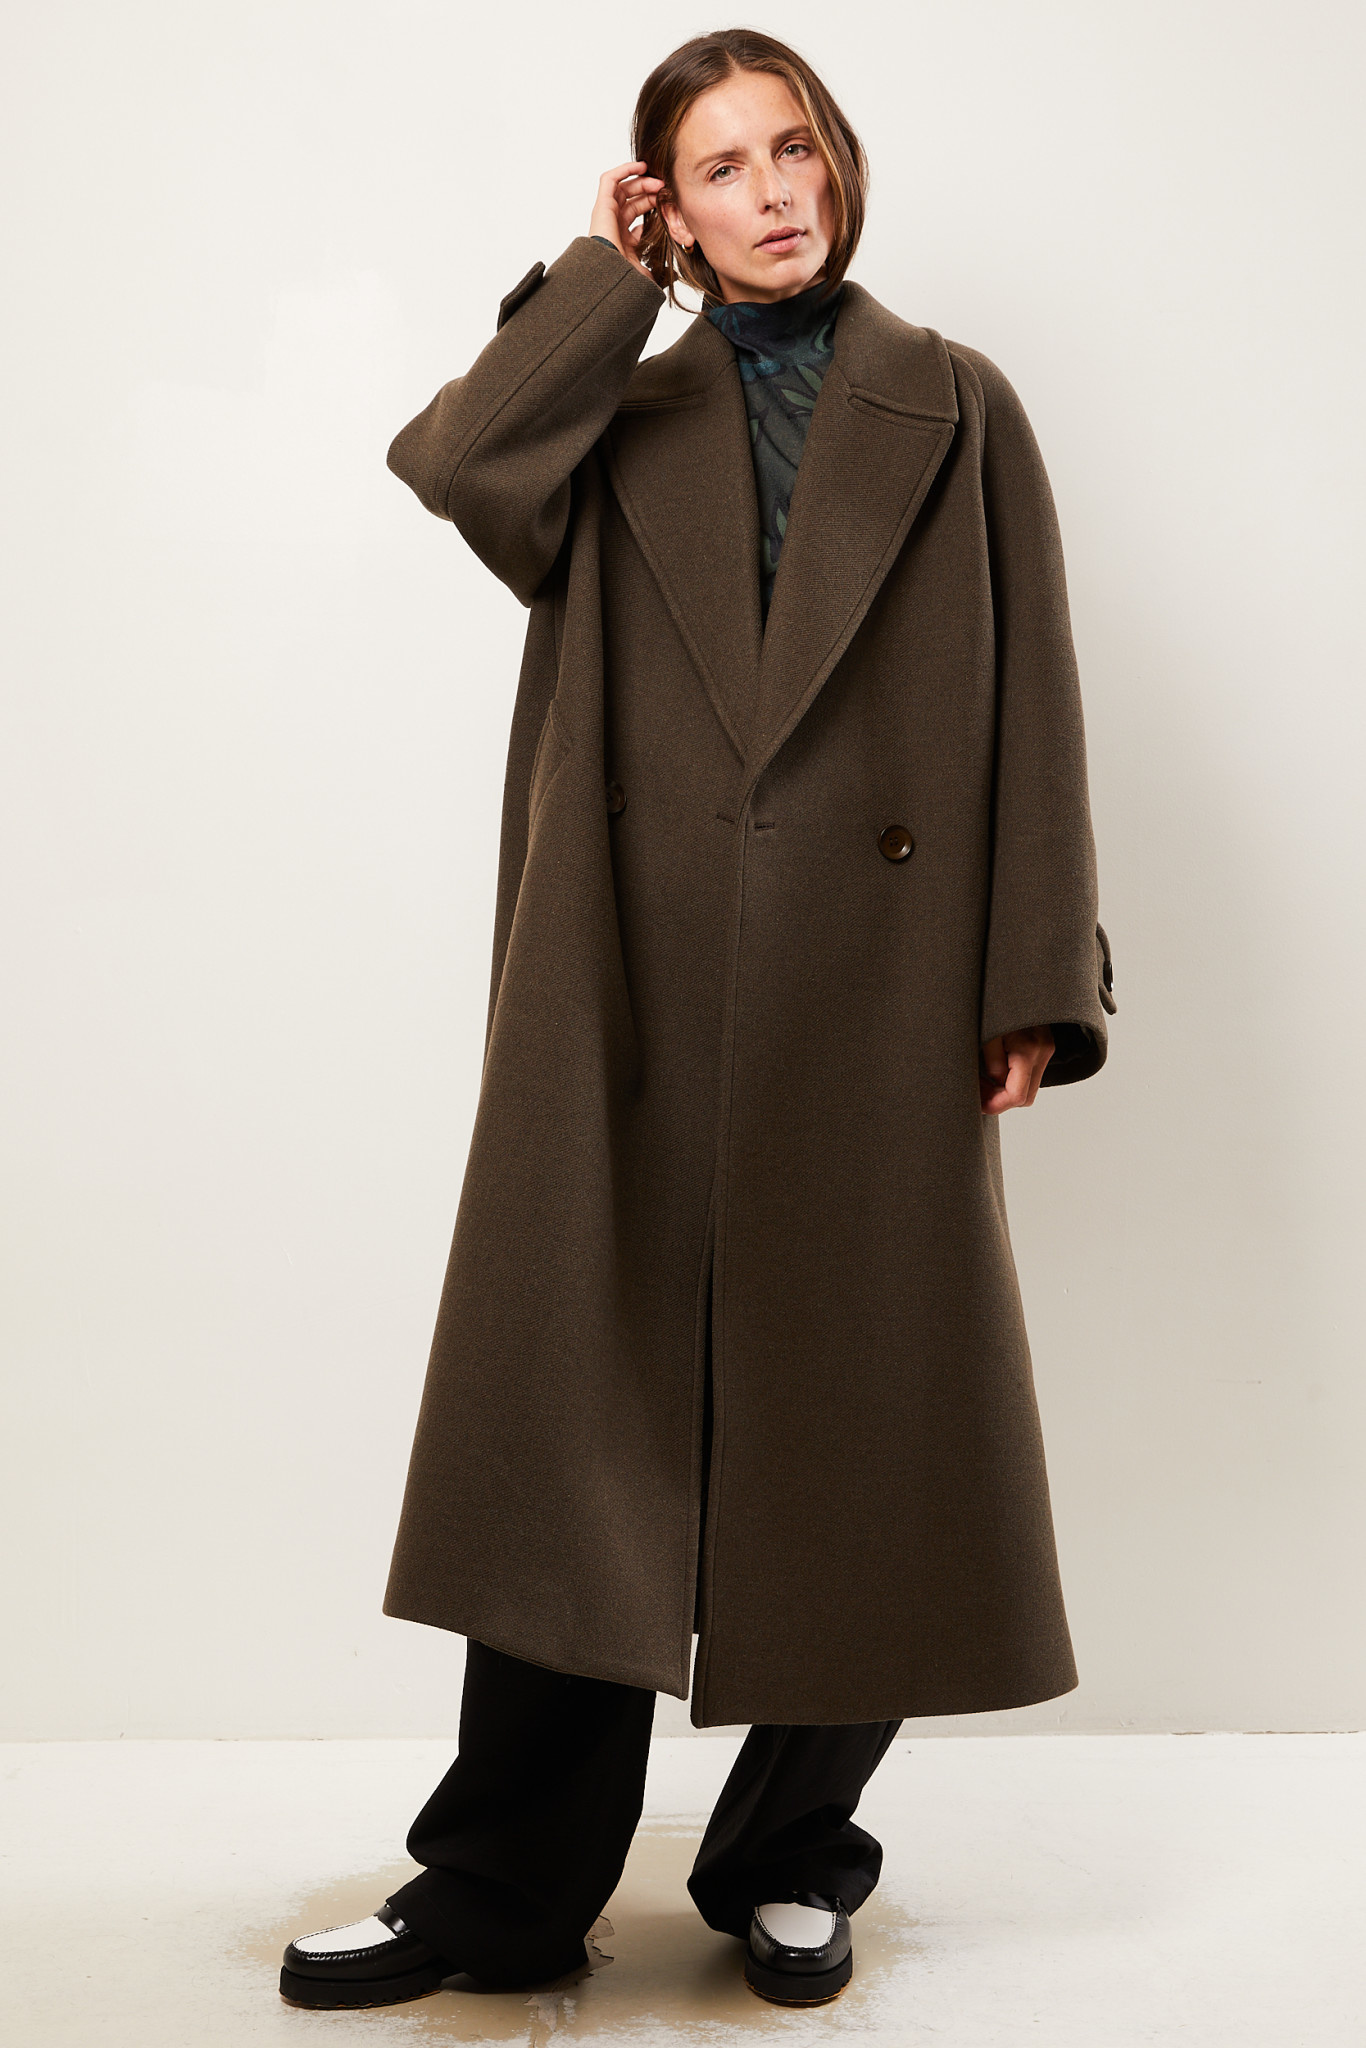 Christian Wijnants Cilian recycled wool coat